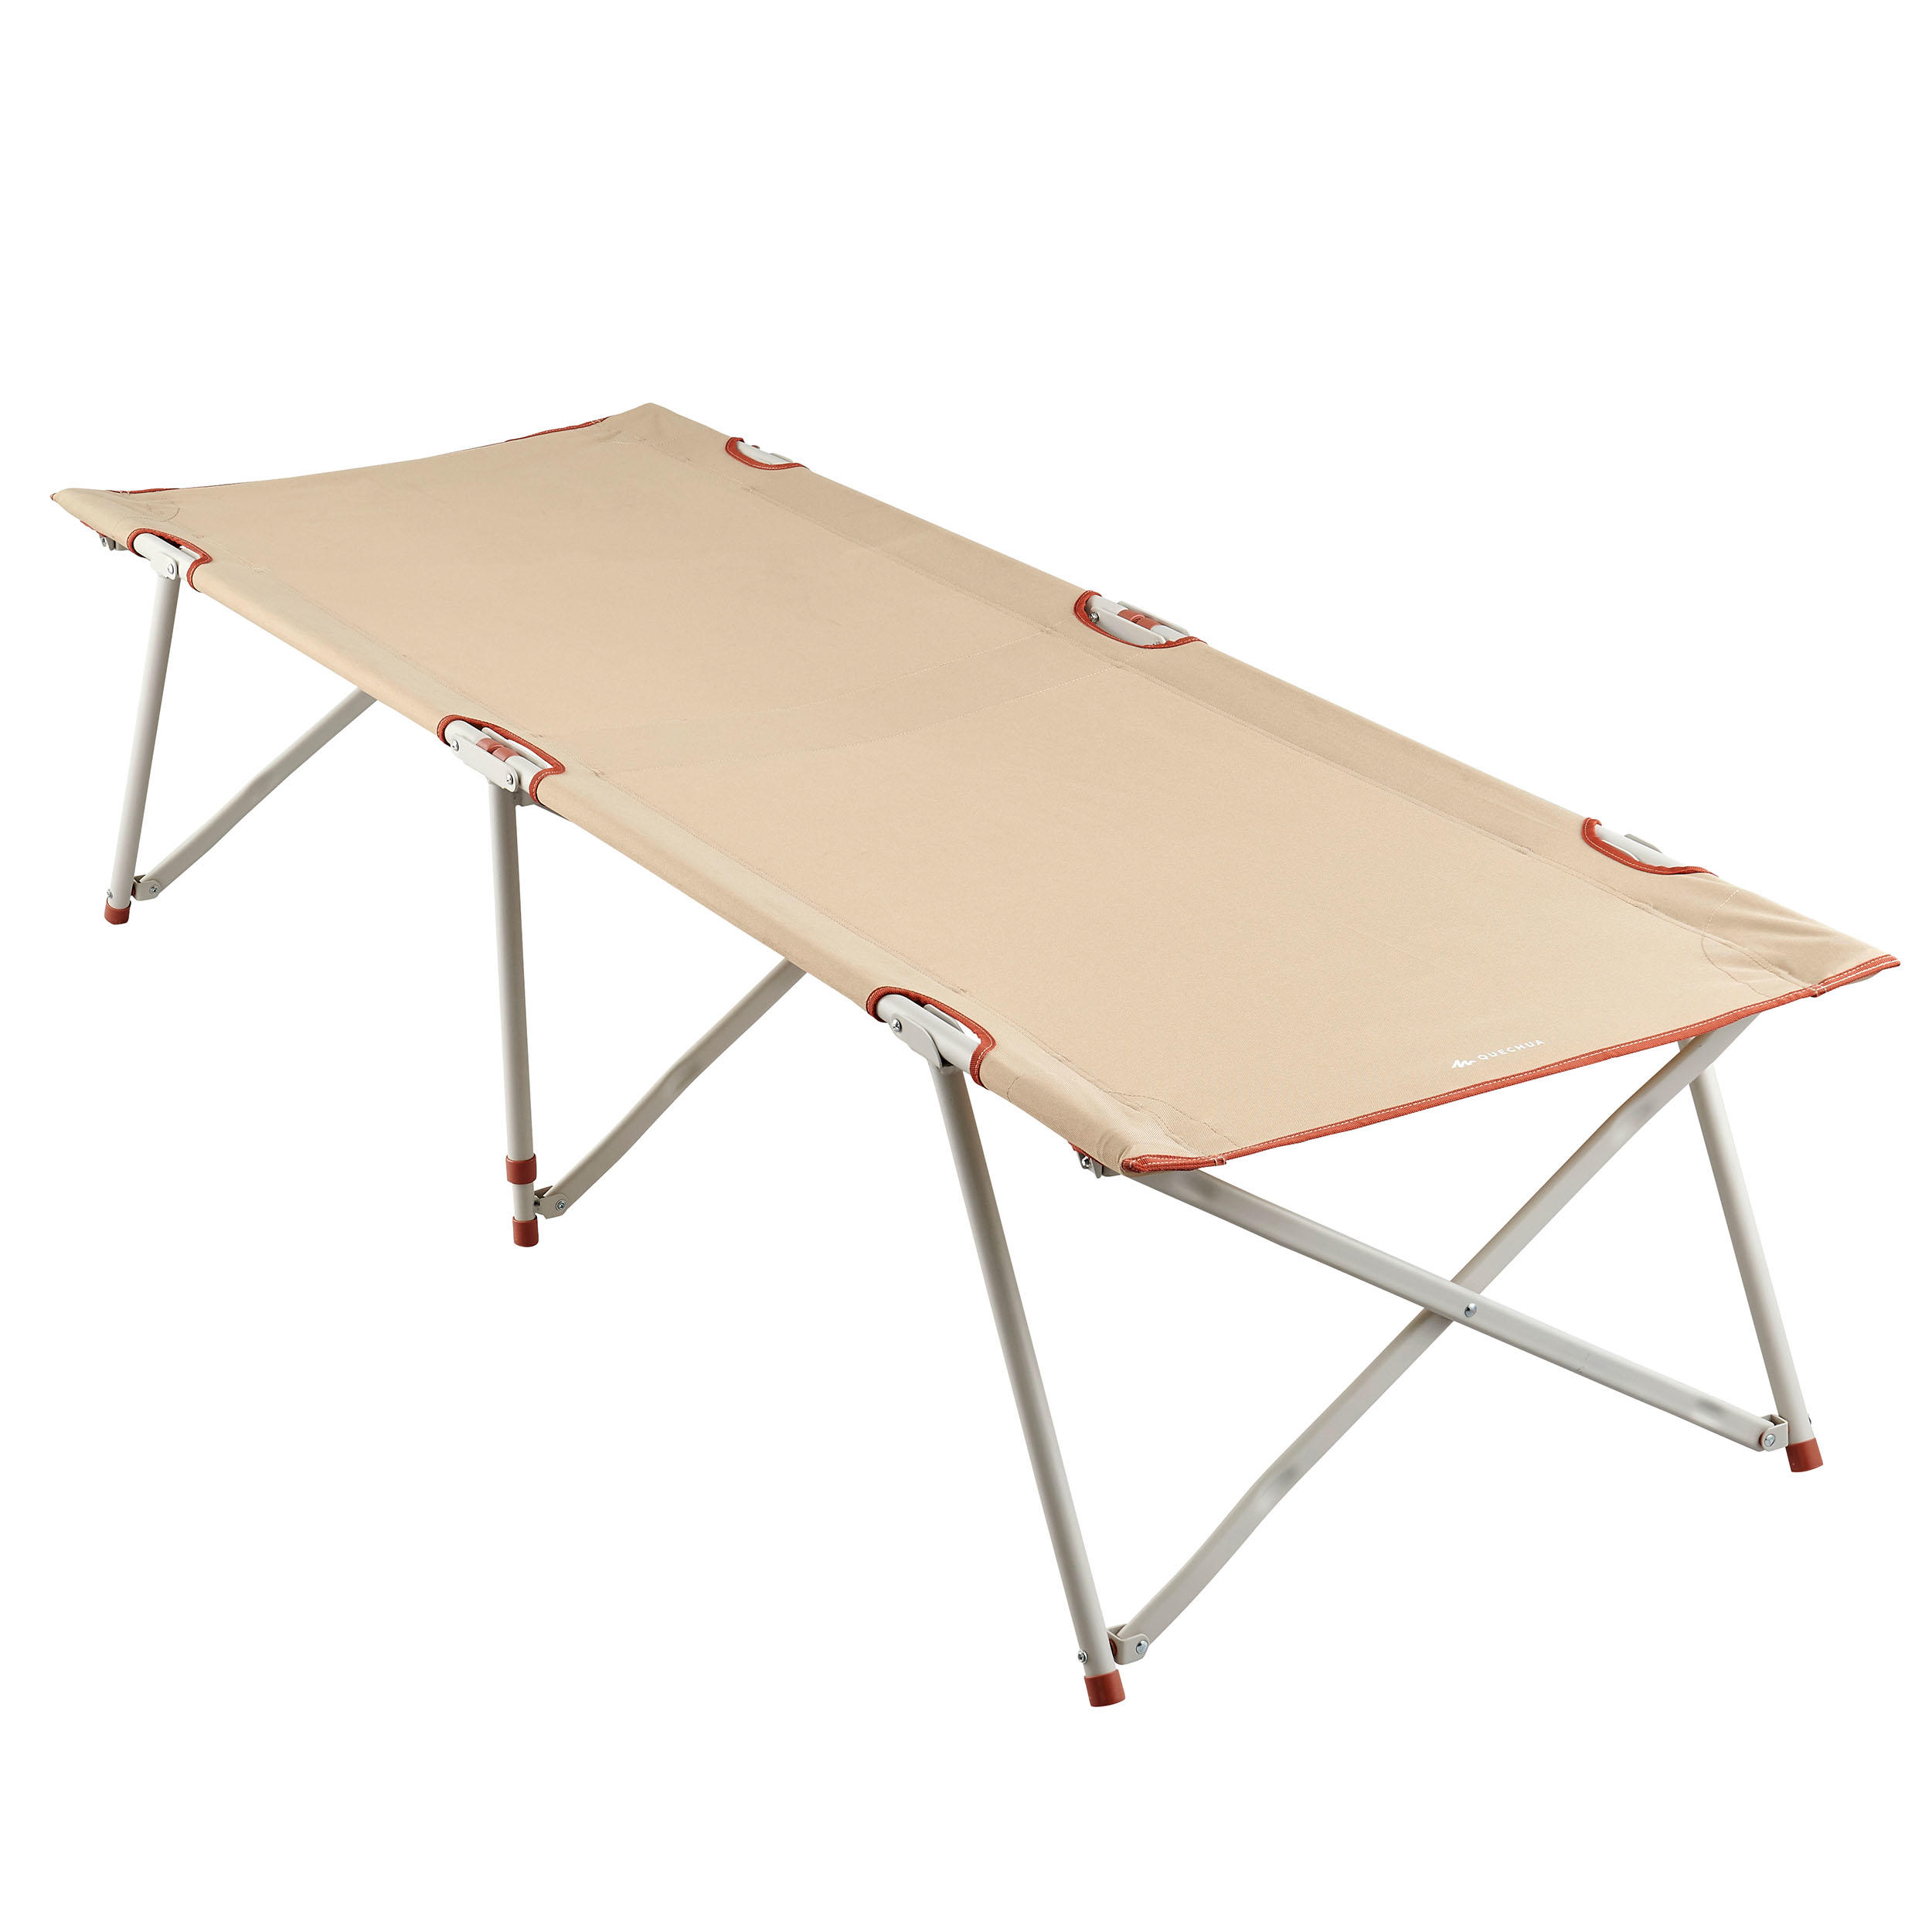 Lit De Camp Pour Le Camping Camp Bed Second 65 Cm 1 Personne Quechua Decathlon